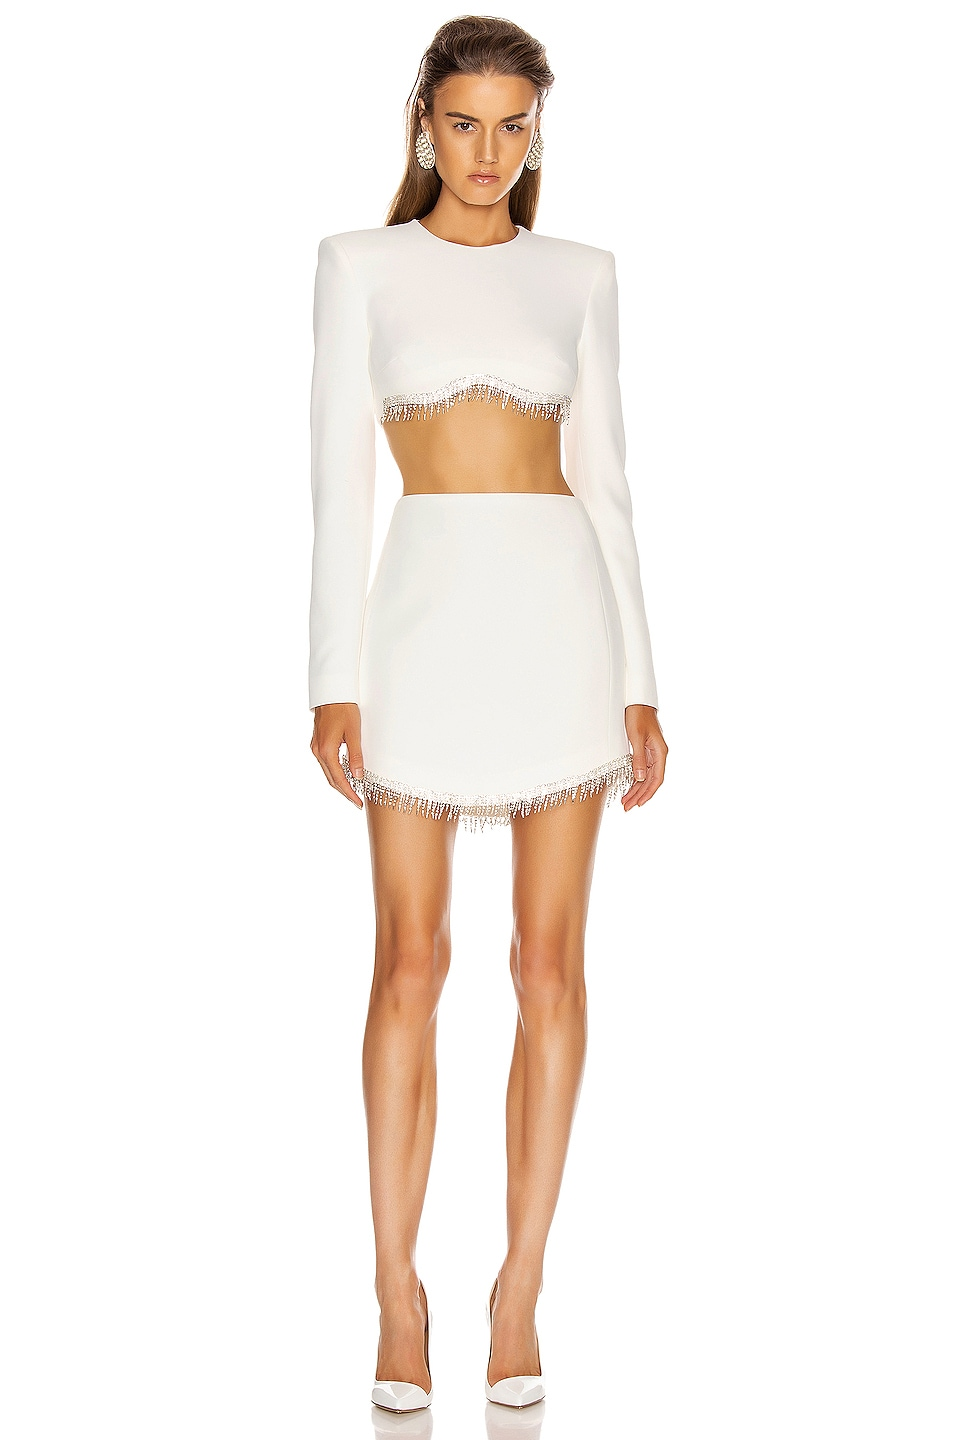 Image 4 of David Koma Crystal Chain Long Sleeve Empire Top in White & Silver